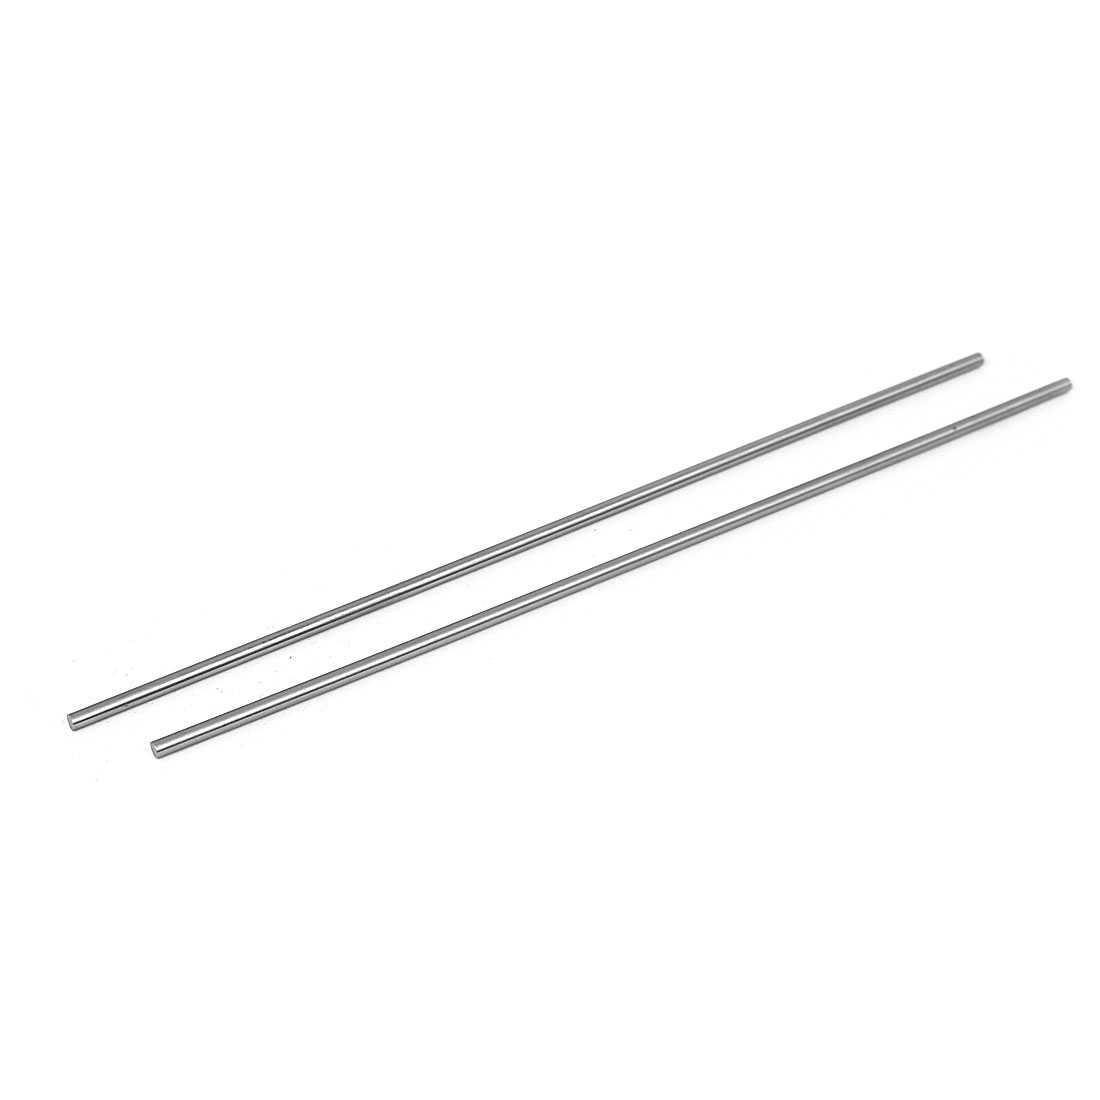 3mm x 200mm Metal Machine Turning Tools Rod Bar Lathe Round Stick 2pcs